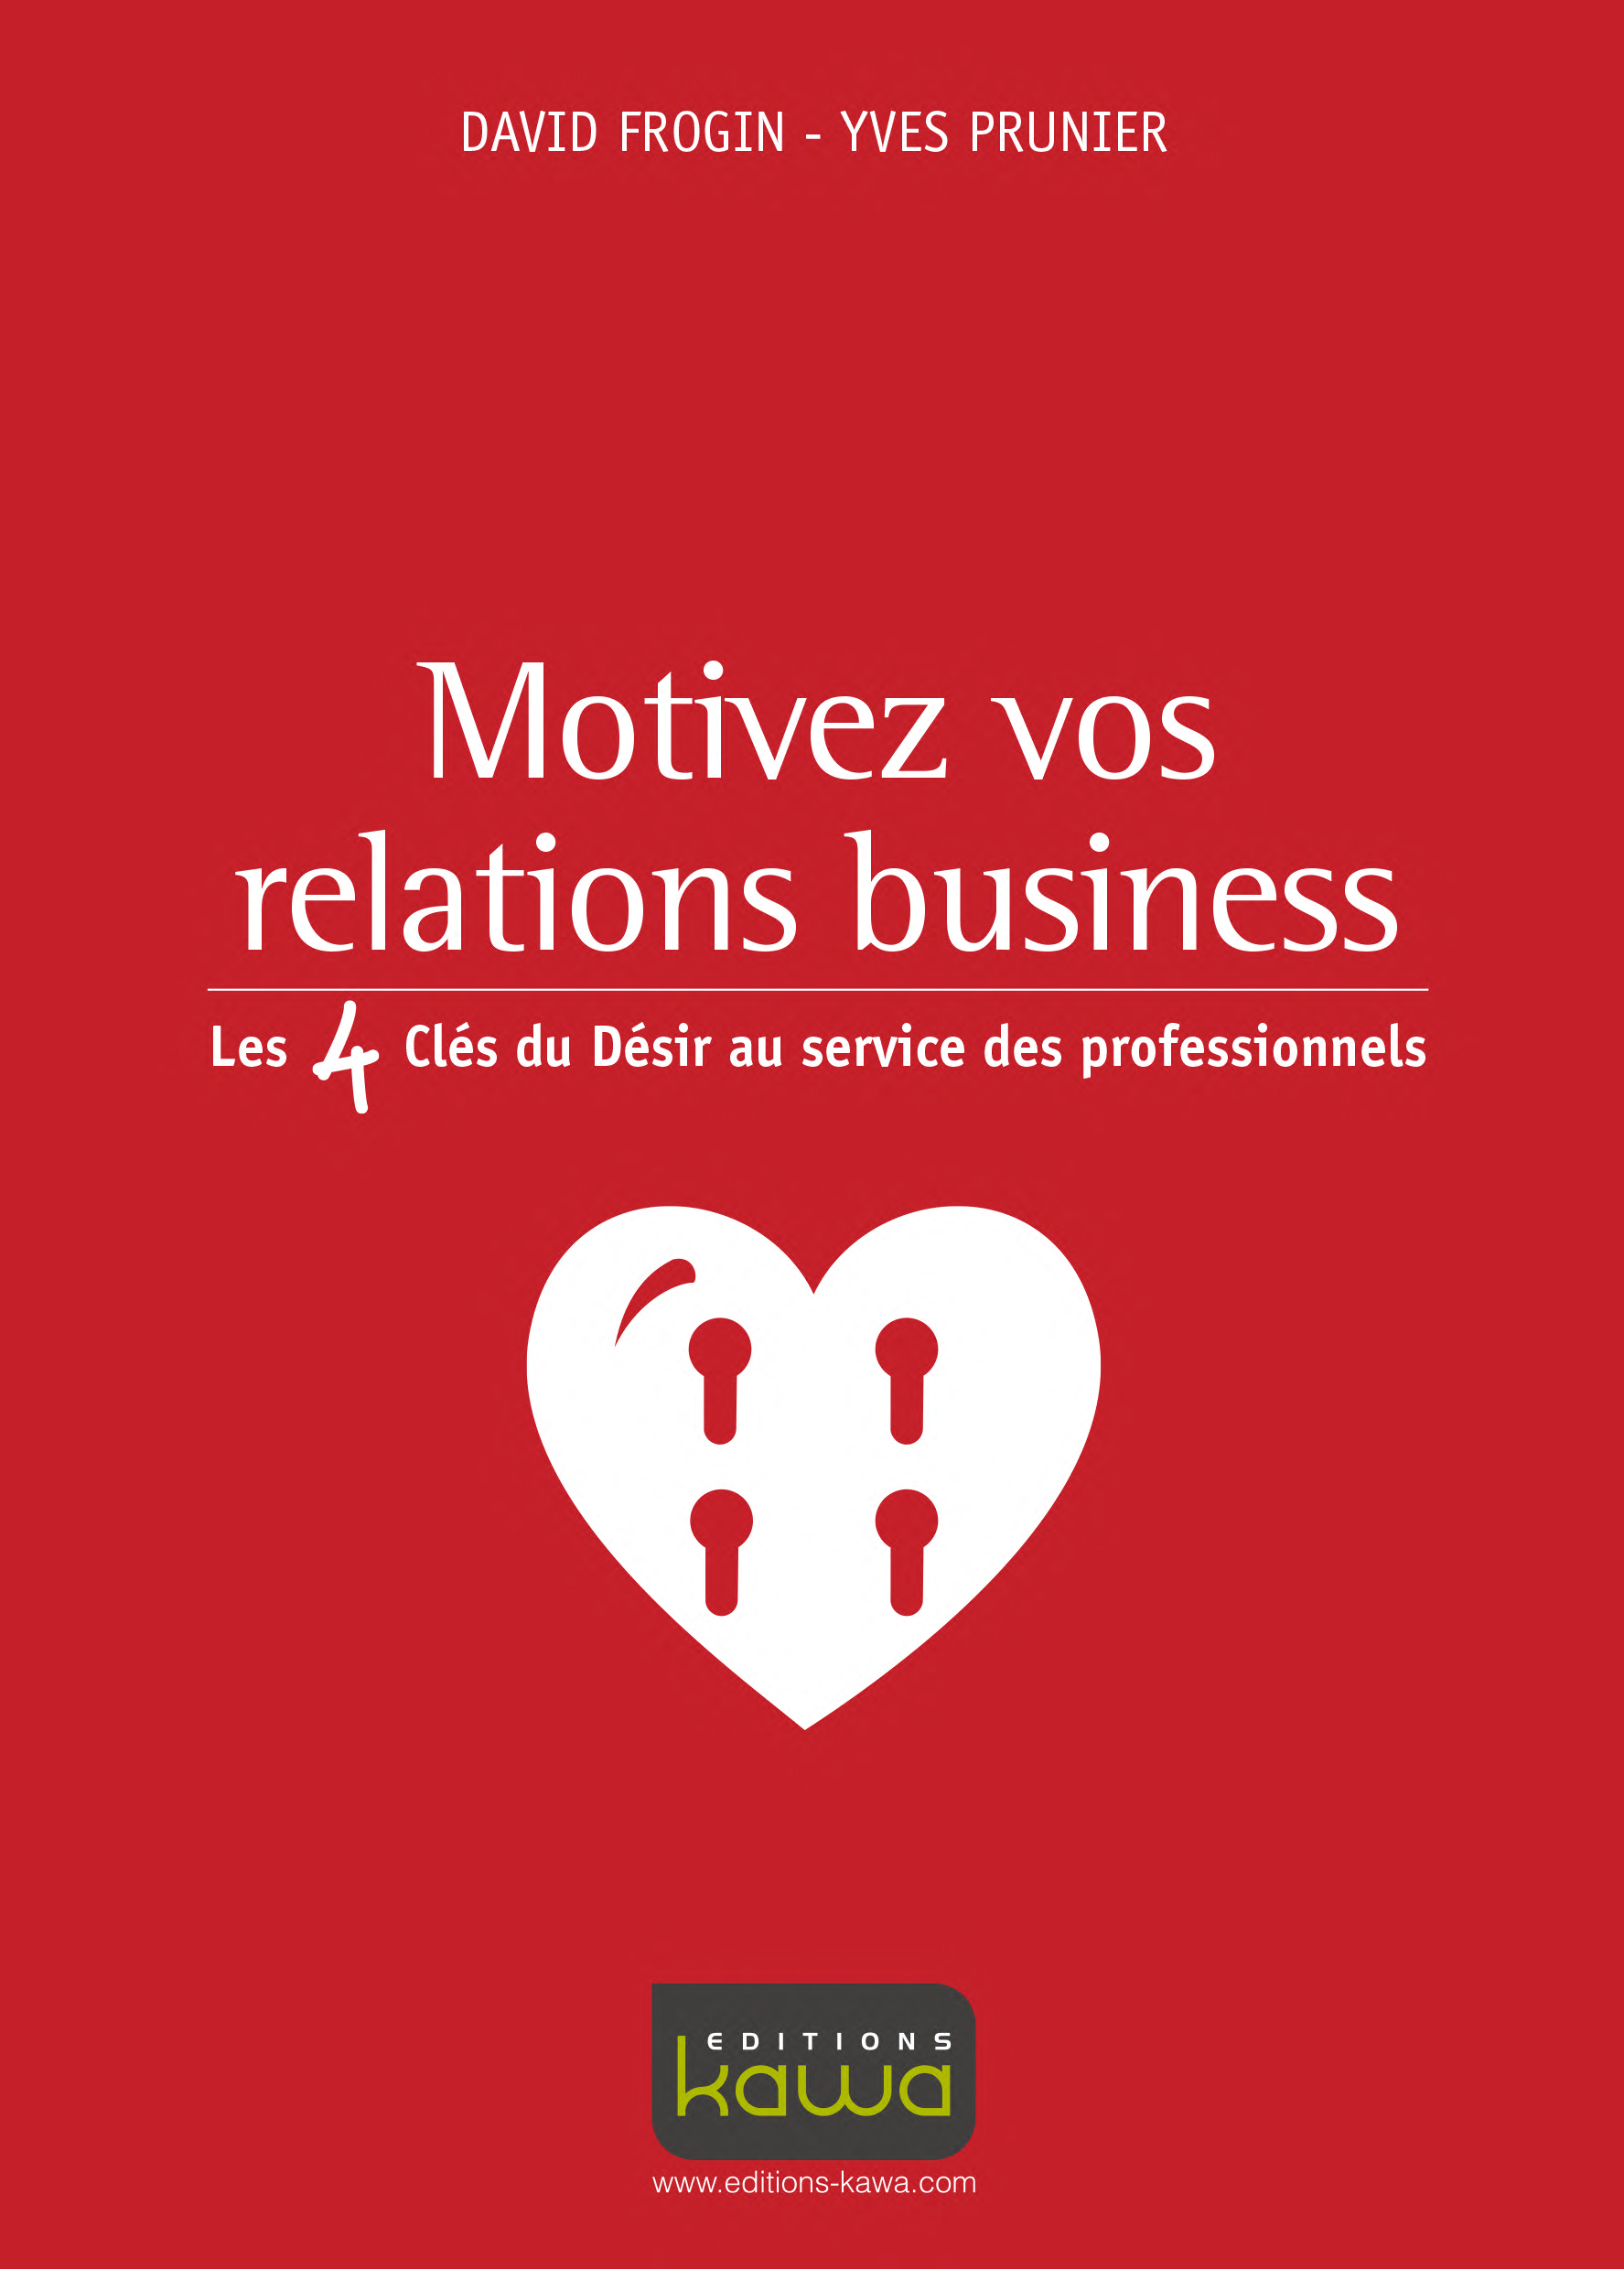 Motivez vos relations business